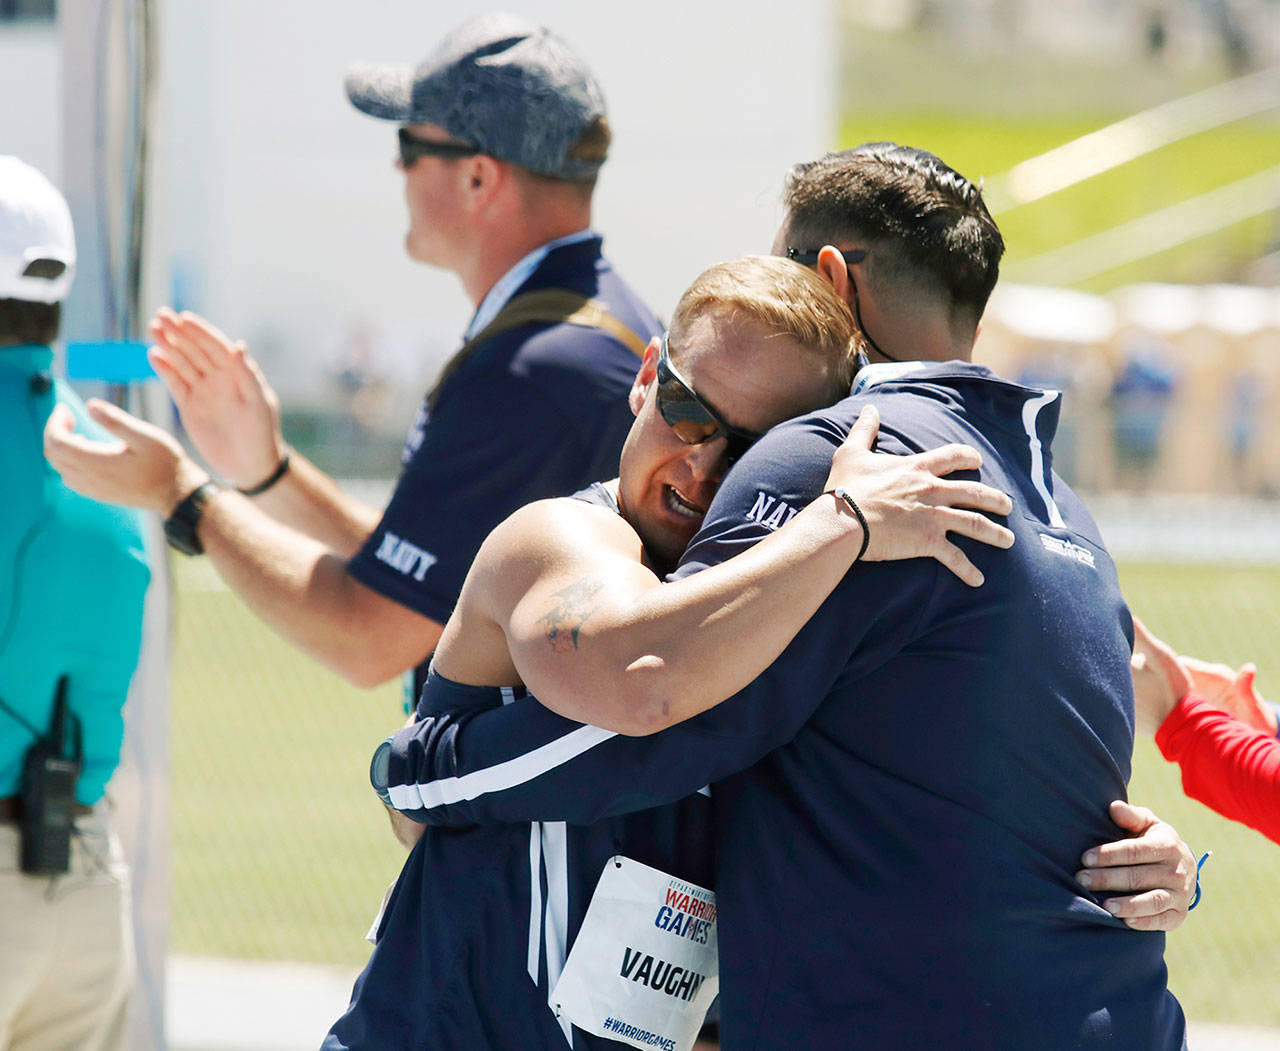 Navy Chief Petty Officer Tim Vaughn (left), of Marysville,	hugs track coach Kyle Putnam (right) after Vaughn competed in the men's 1500 meters at the U.S. Air Force Academy near Colorado Springs, Colorado, on	June 2 . Vaughn is an athlete competing in the ninth edition of the Department of Defense Warrior Games. (Photo/Zoe L. Smith, Grady Sports Bureau)